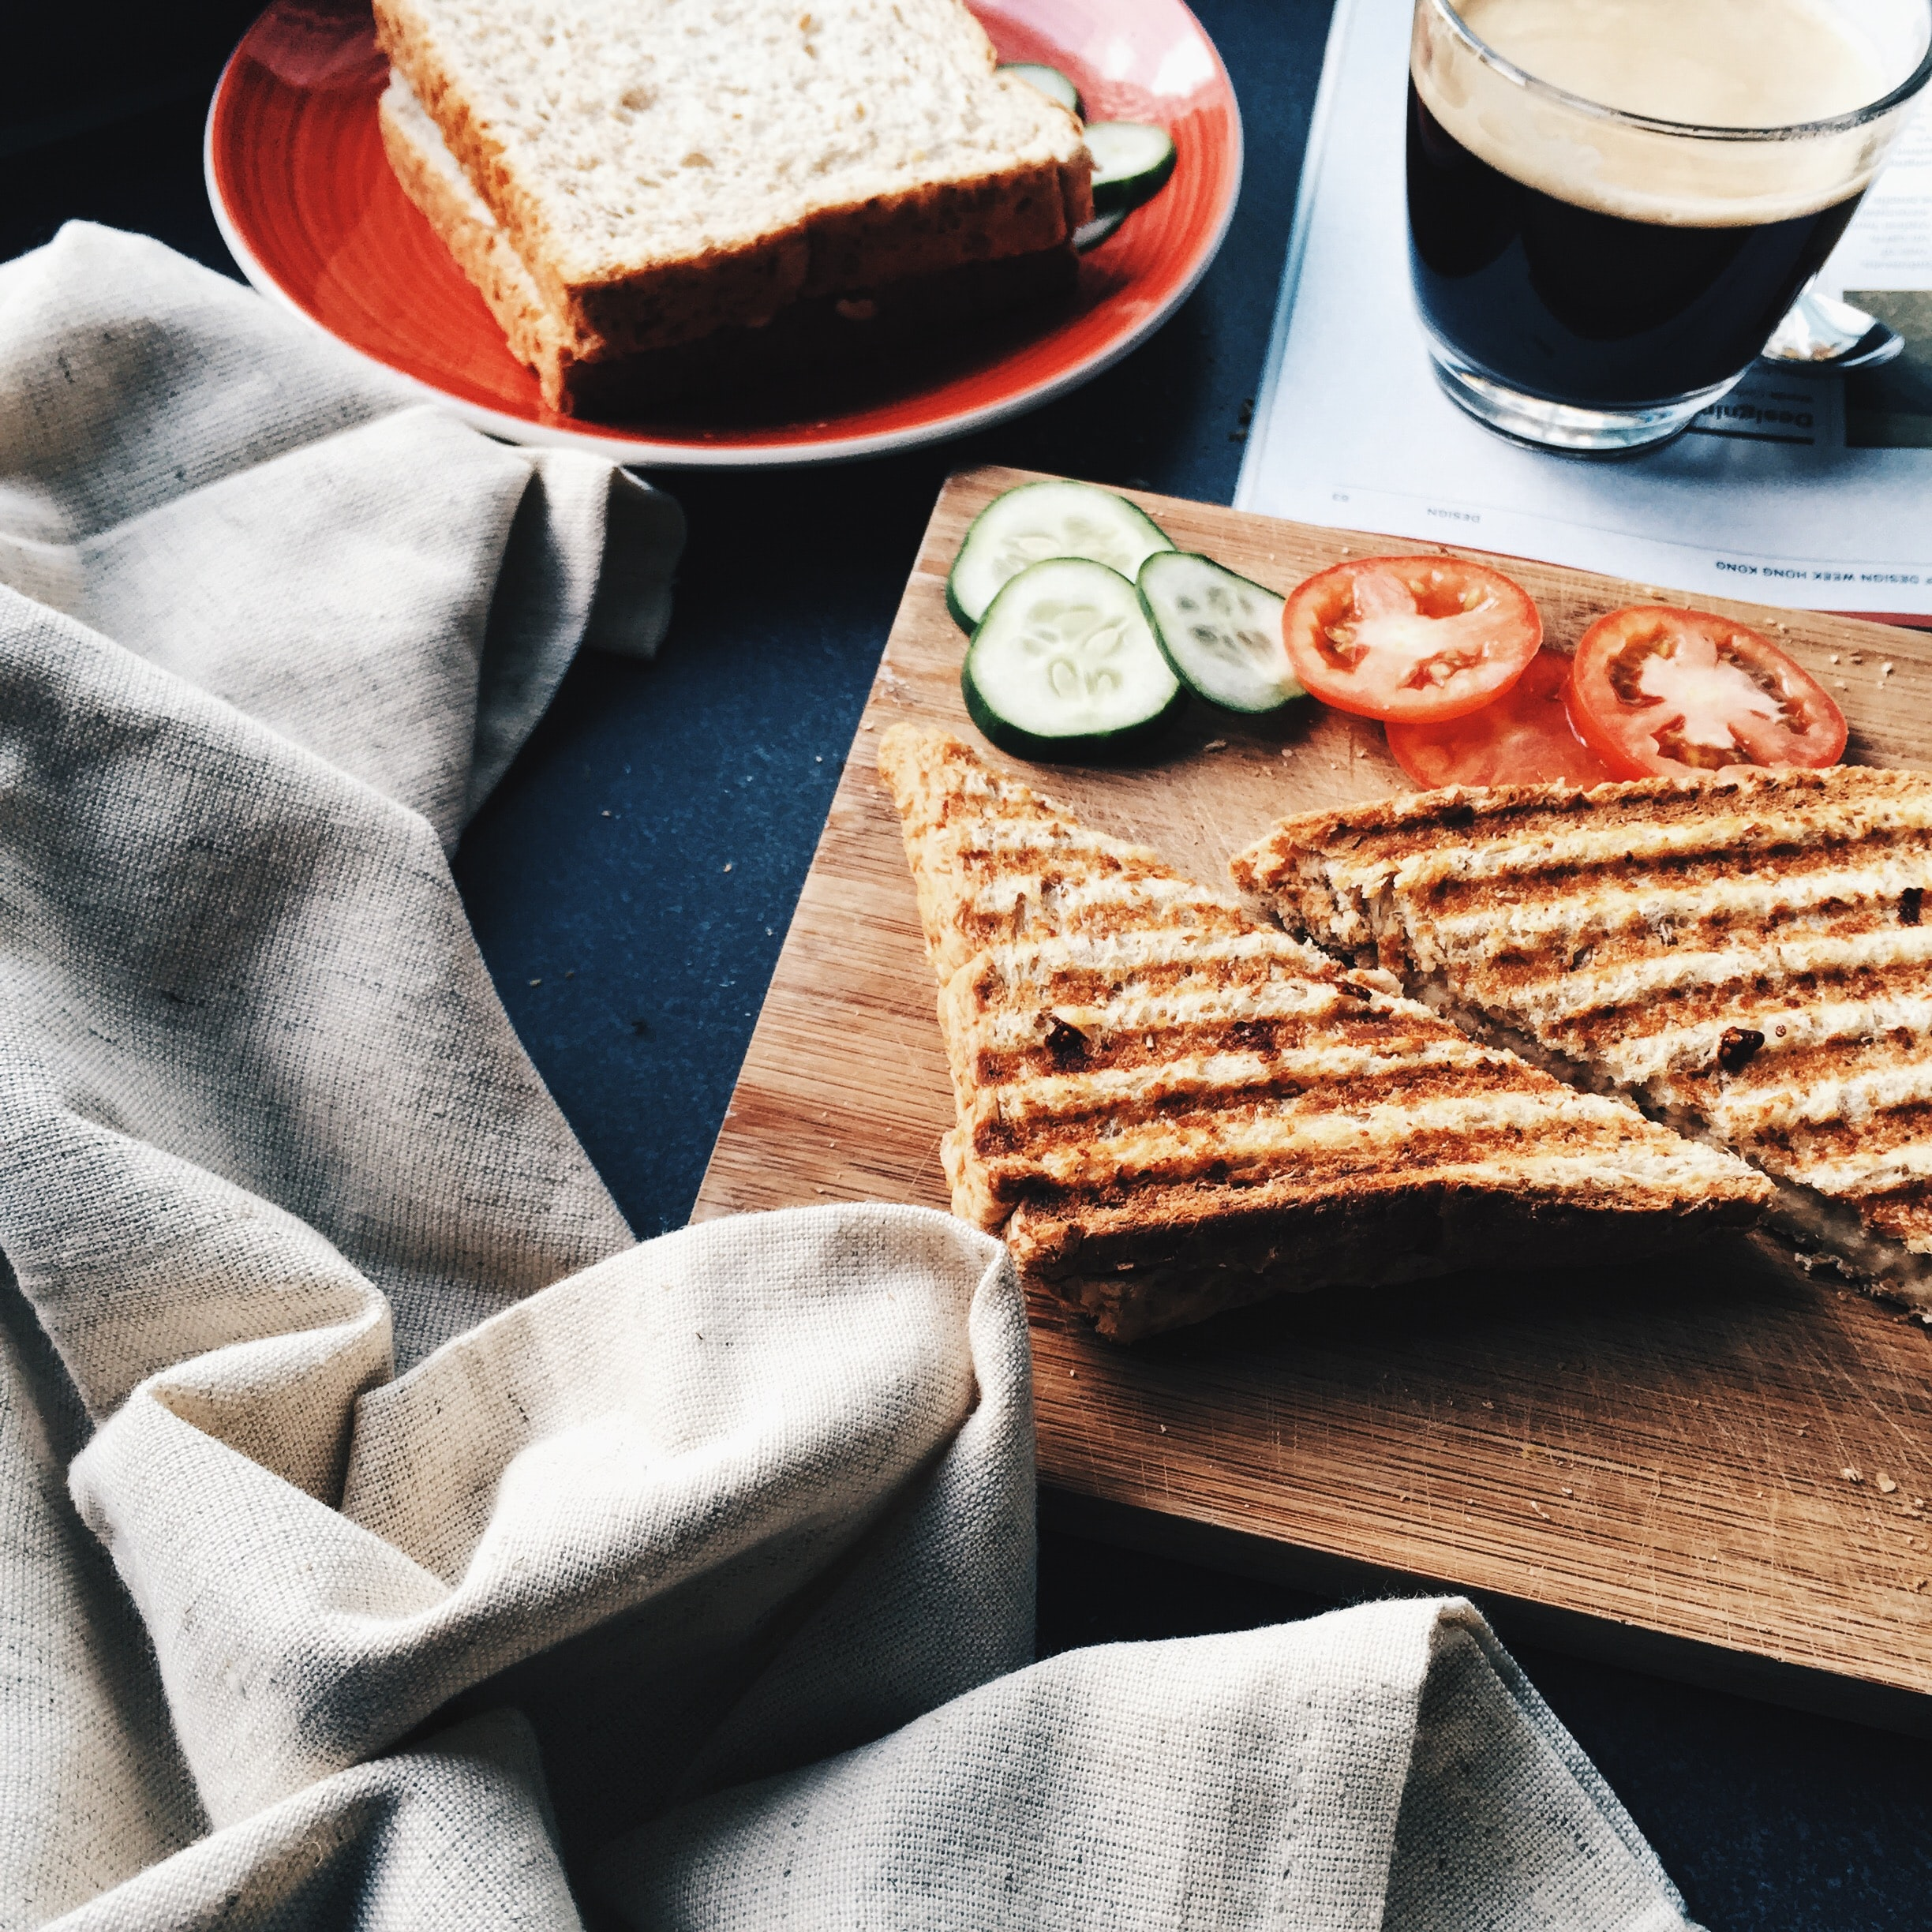 sliced grilled bread beside tomatoes and cucumbers on brown wooden board